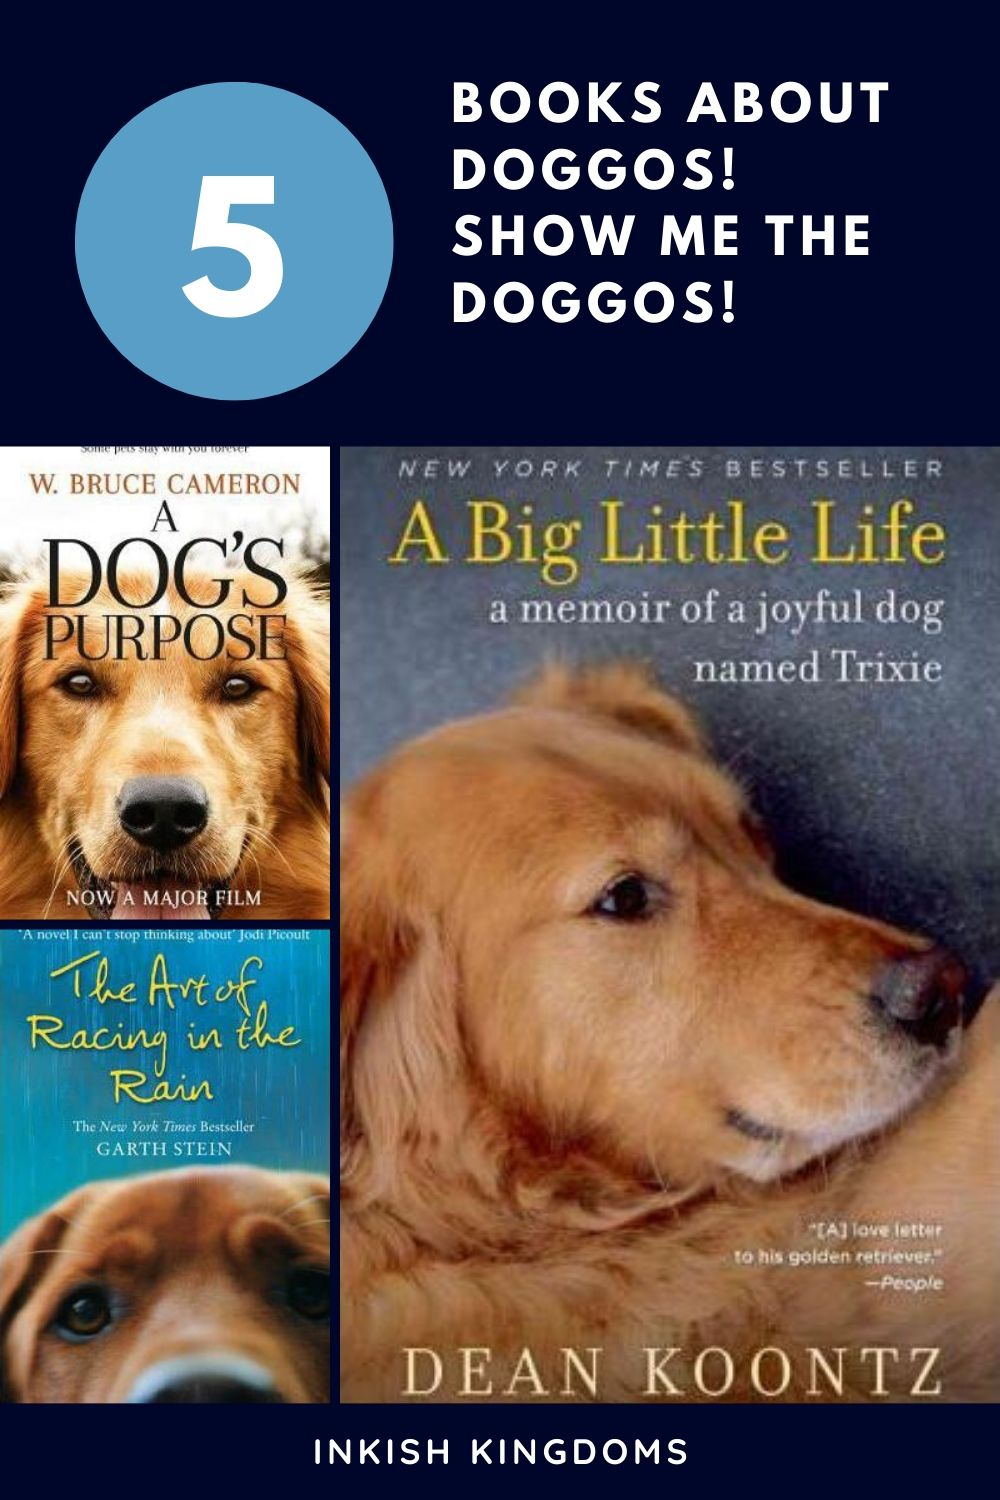 books about doggos! Show me the doggos!